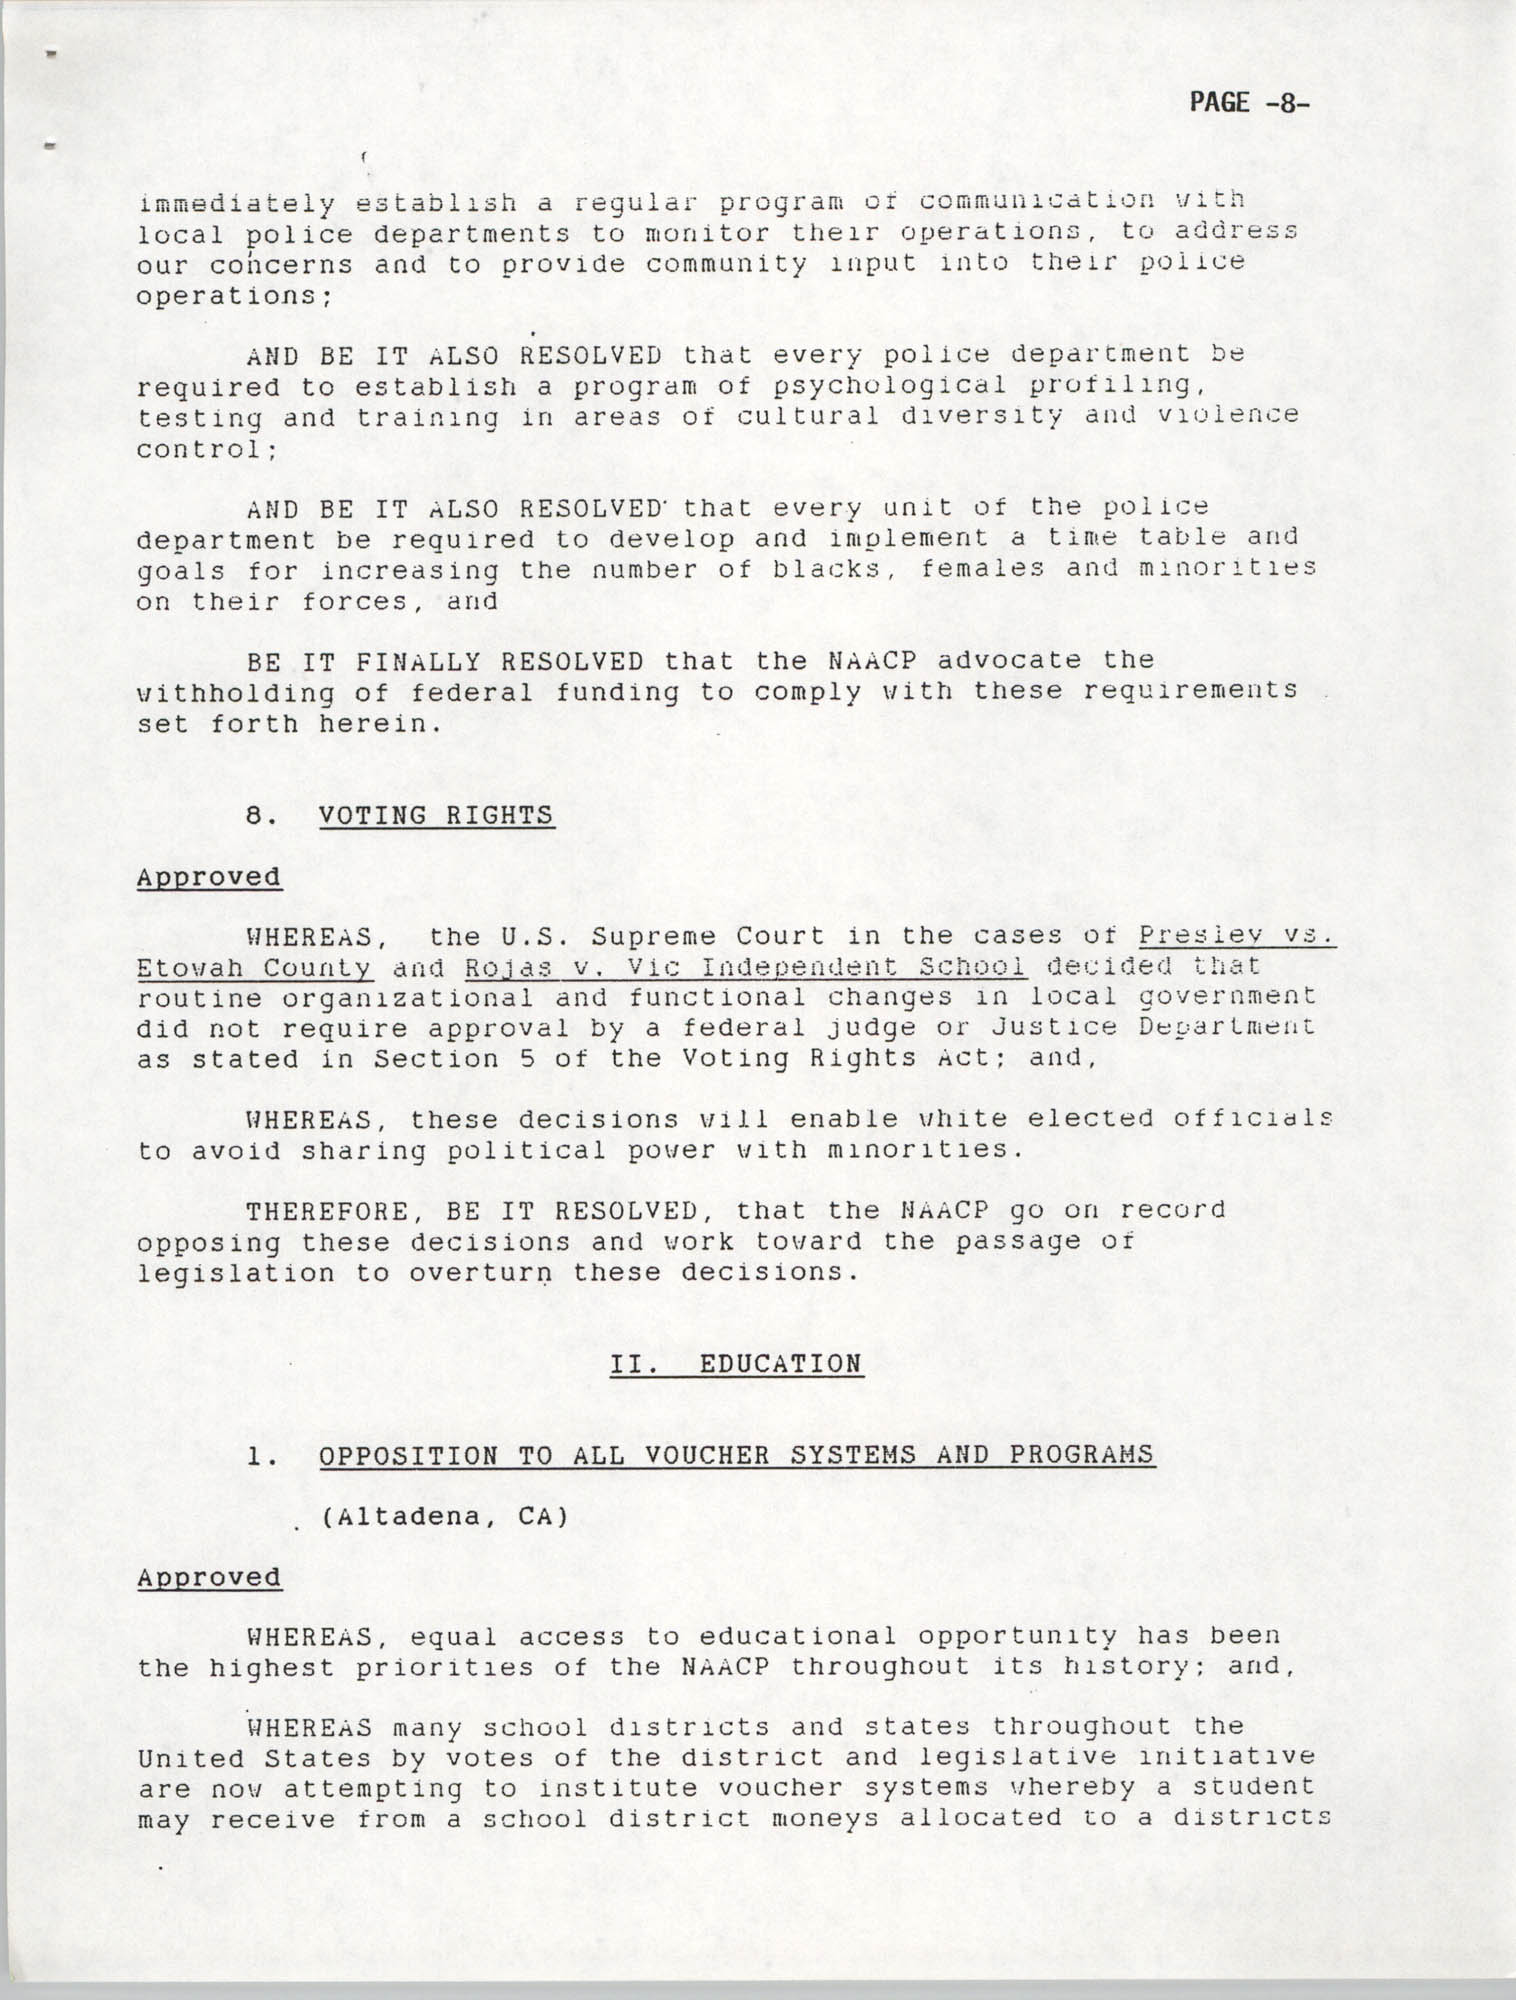 Resolutions Submitted Under Article X, Section 2 of the Constitution of the NAACP, 1992, Page 8